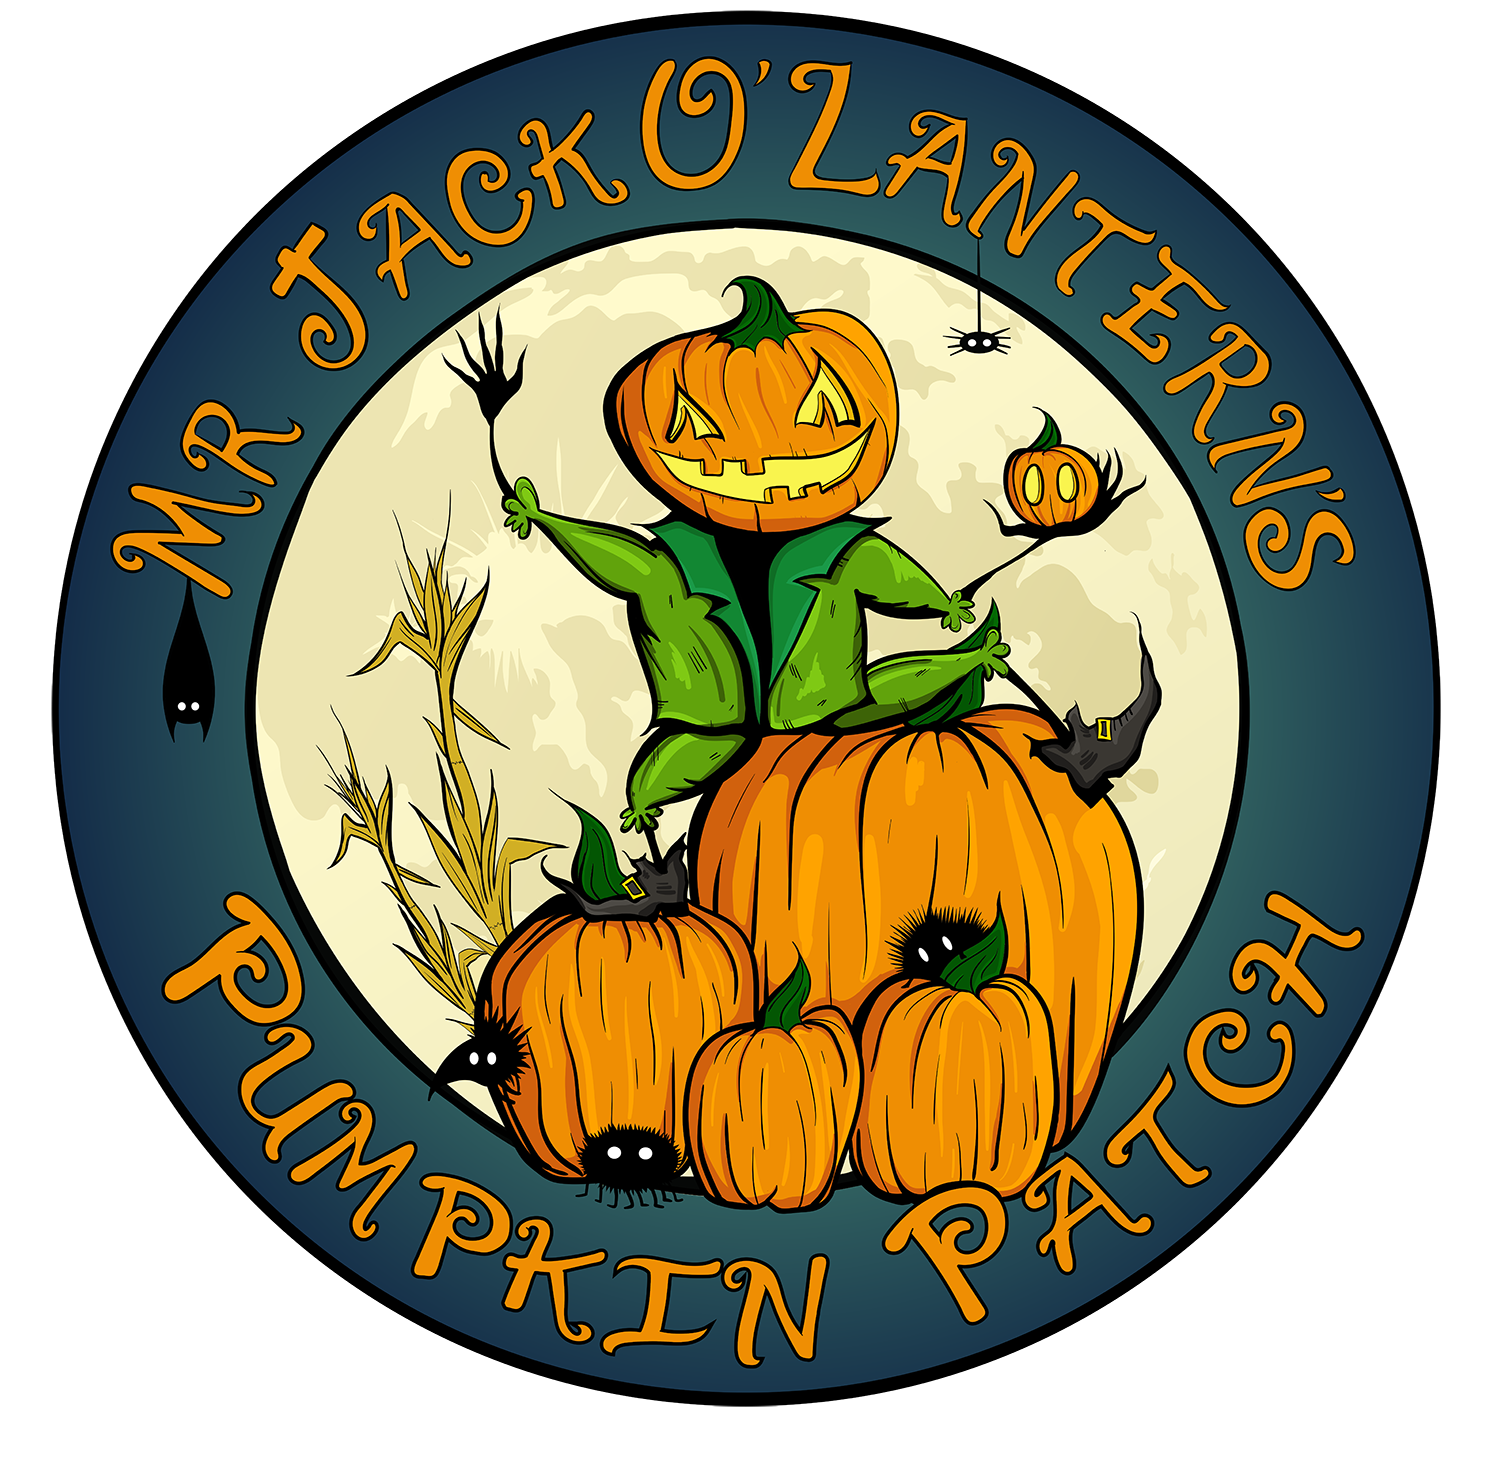 Scary clipart scary pumpkin patch. Games prizes and fun